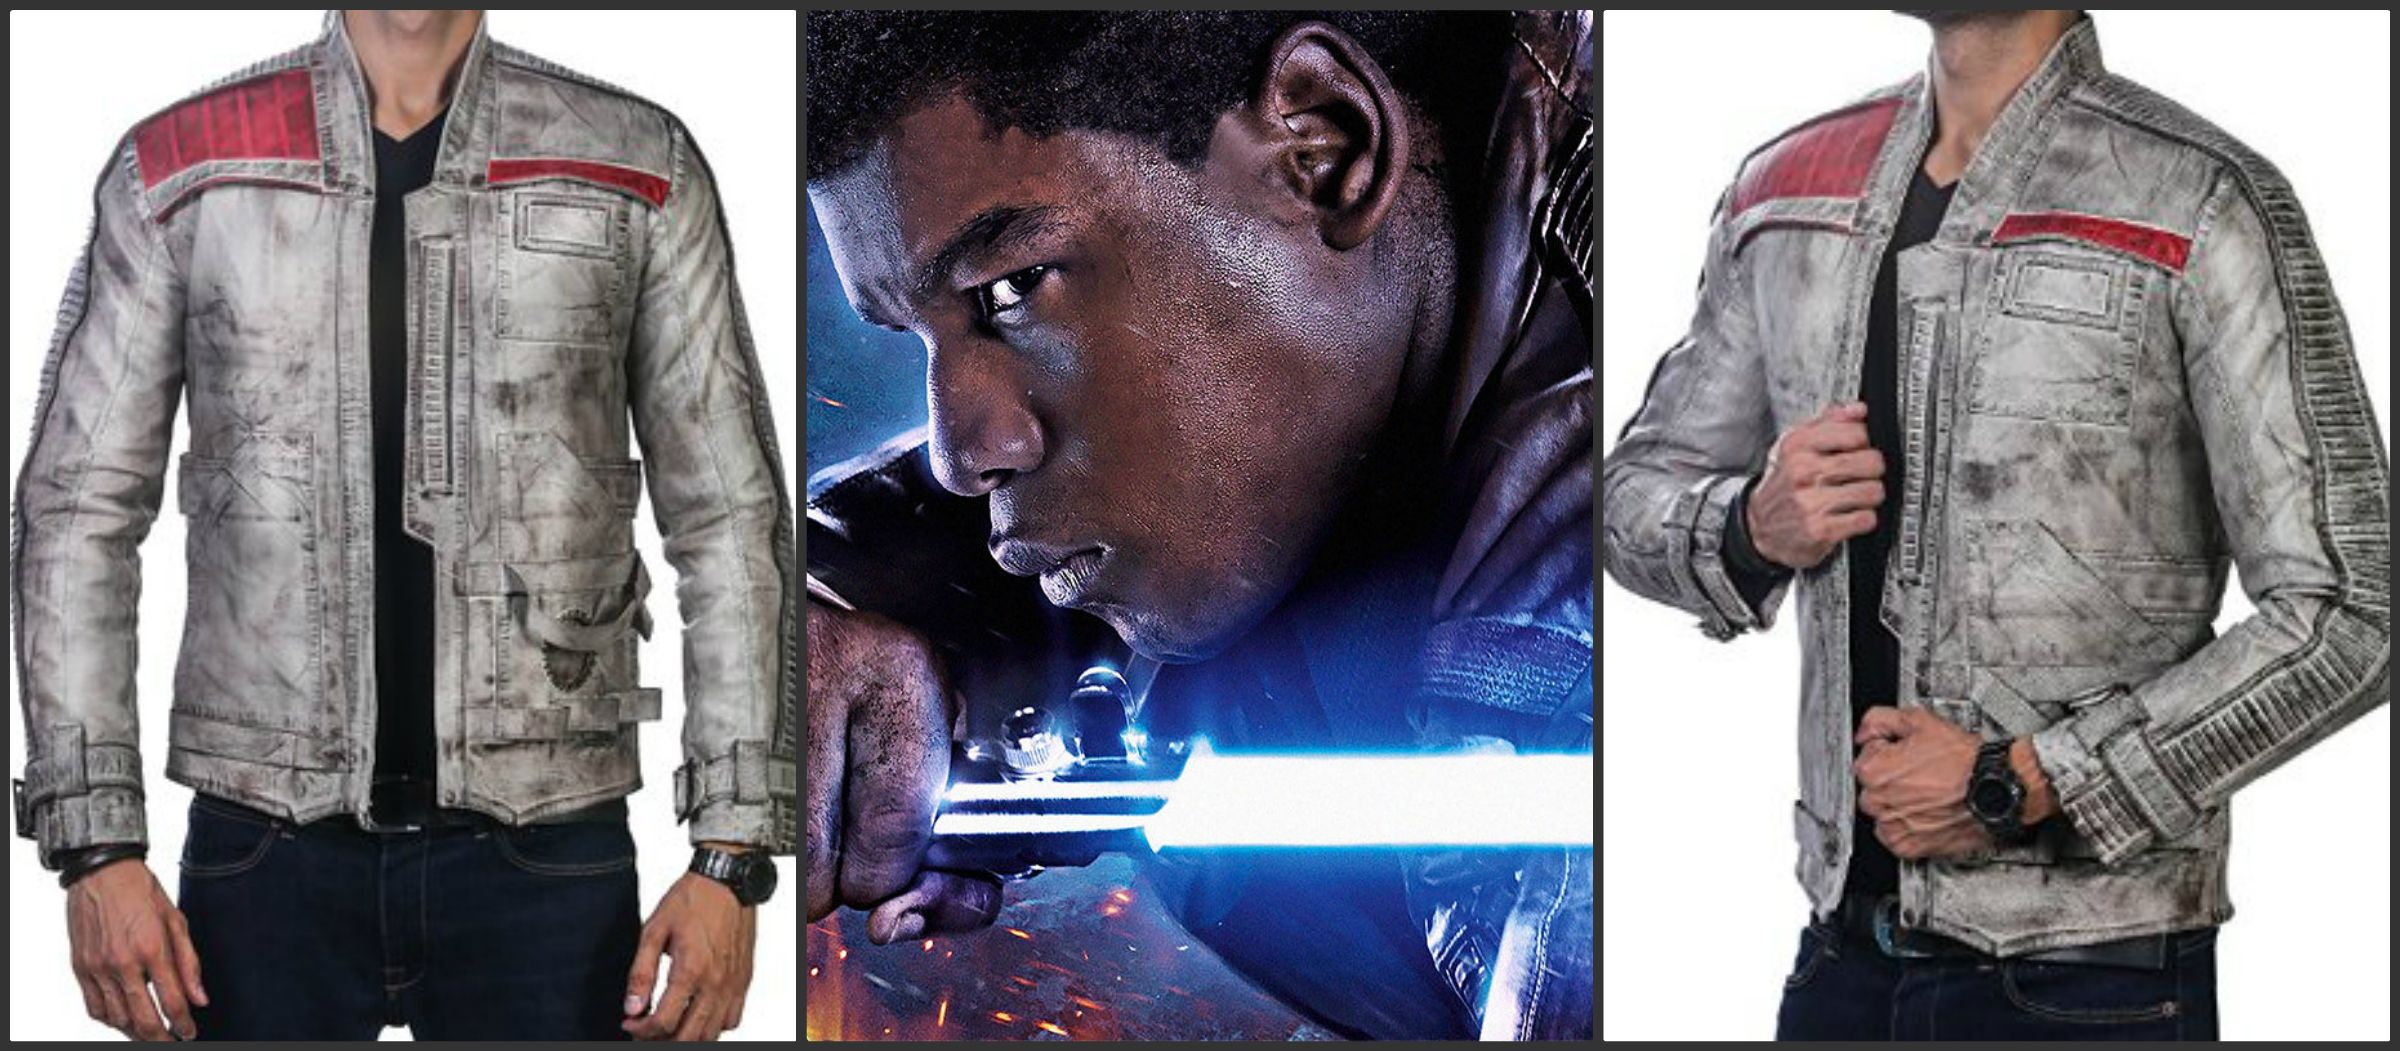 Get this classy John Boyega leather jacket from one of the